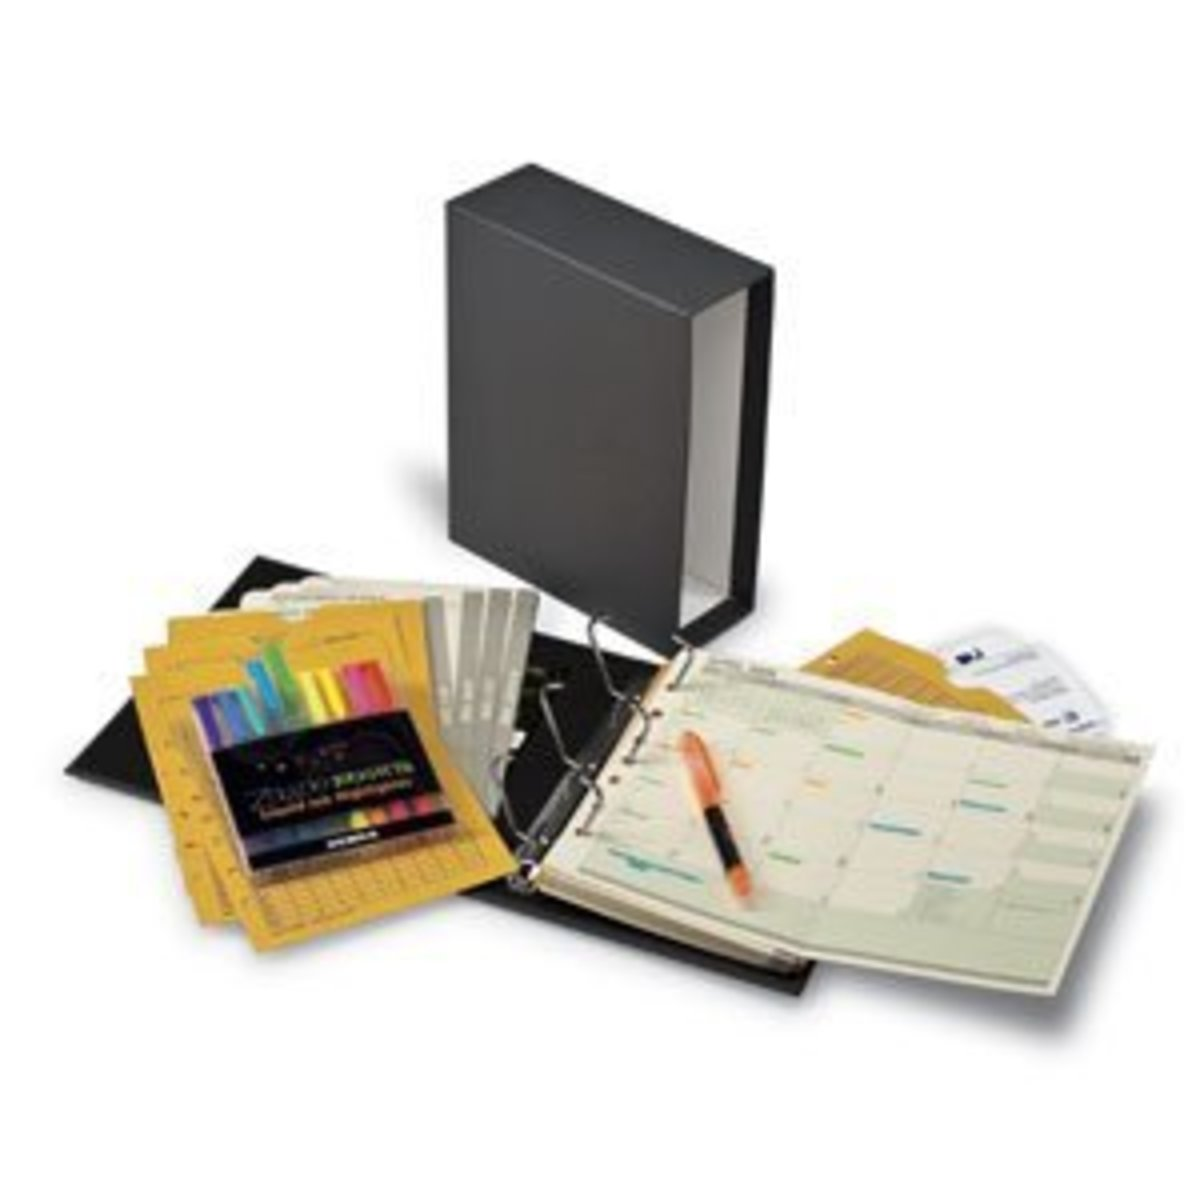 The Bill Payer, home financial organizing set.